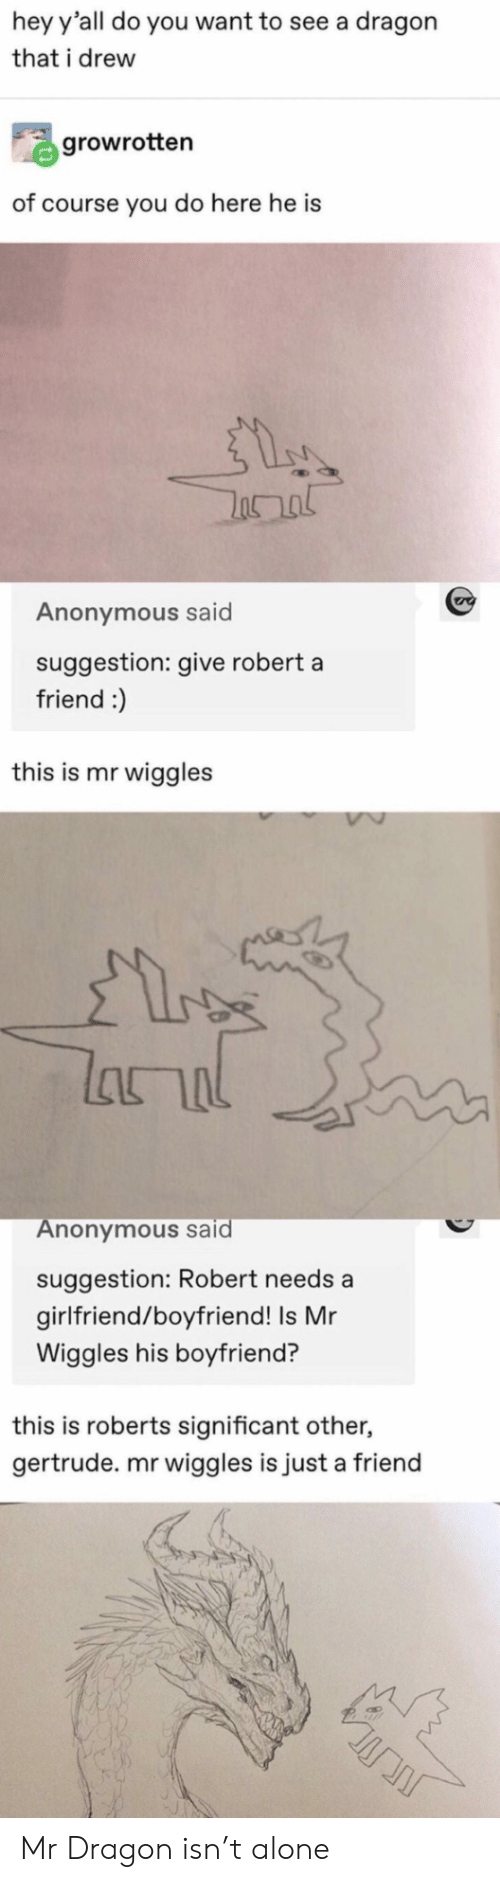 Being Alone, Anonymous, and Girlfriend: hey y'all do you want to see a dragon  that i drew  growrotten  of course you do here he is  Anonymous said  suggestion: give robert a  friend :)  this is mr wiggles  lhור  Anonymous said  suggestion: Robert needs a  girlfriend/boyfriend! Is Mr  Wiggles his boyfriend?  this is roberts significant other,  gertrude. mr wiggles is just a friend Mr Dragon isn't alone